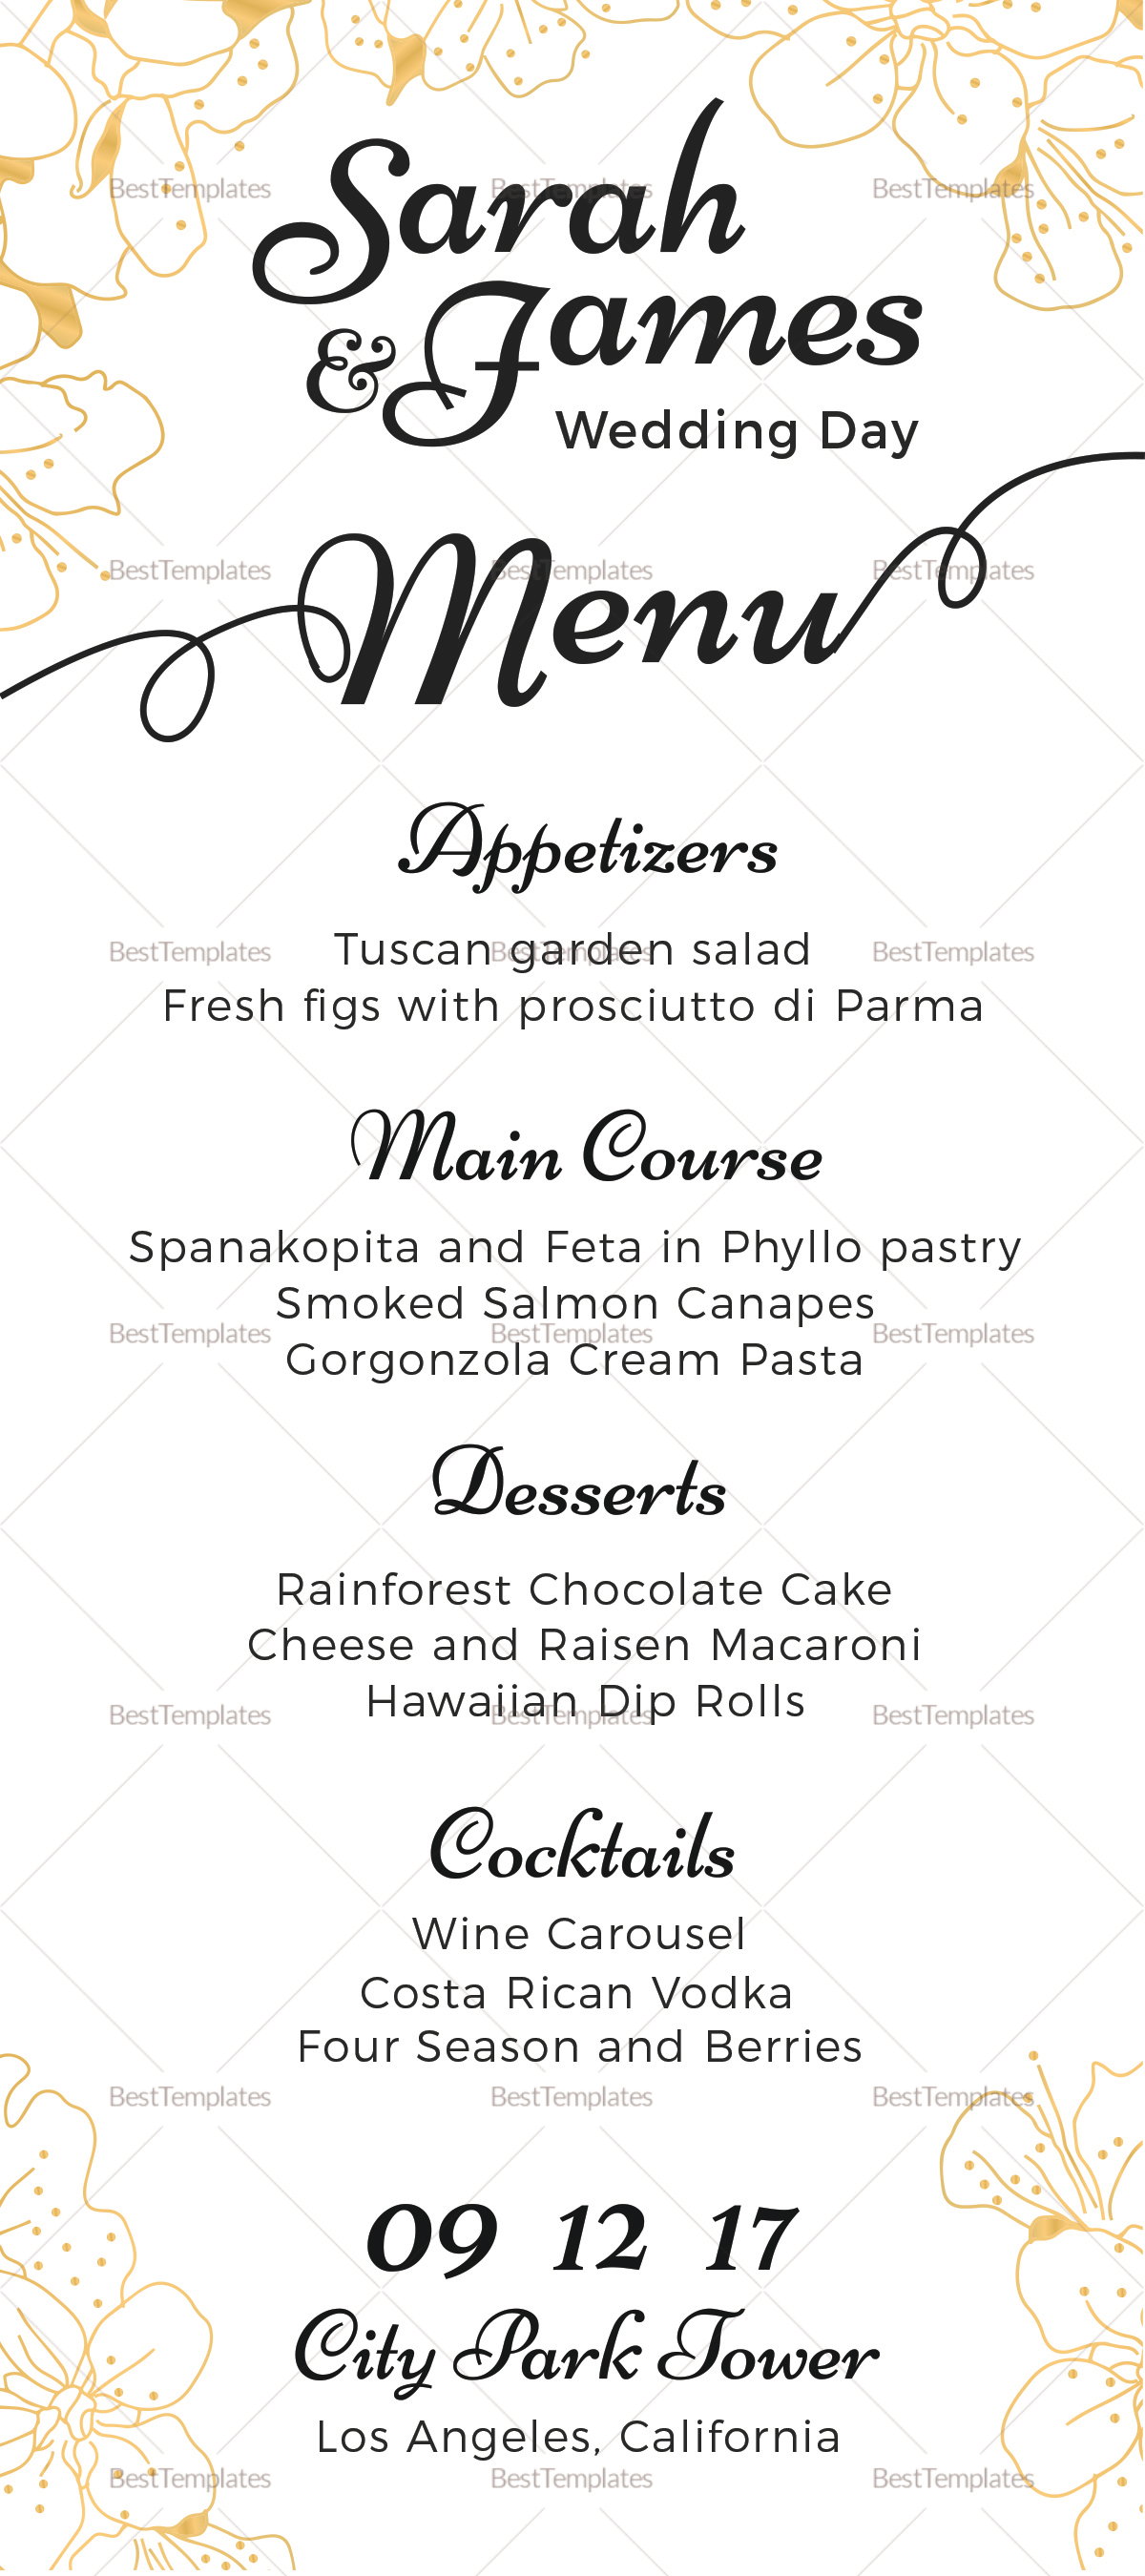 Reception Wedding Menu Design Template in PSD Word